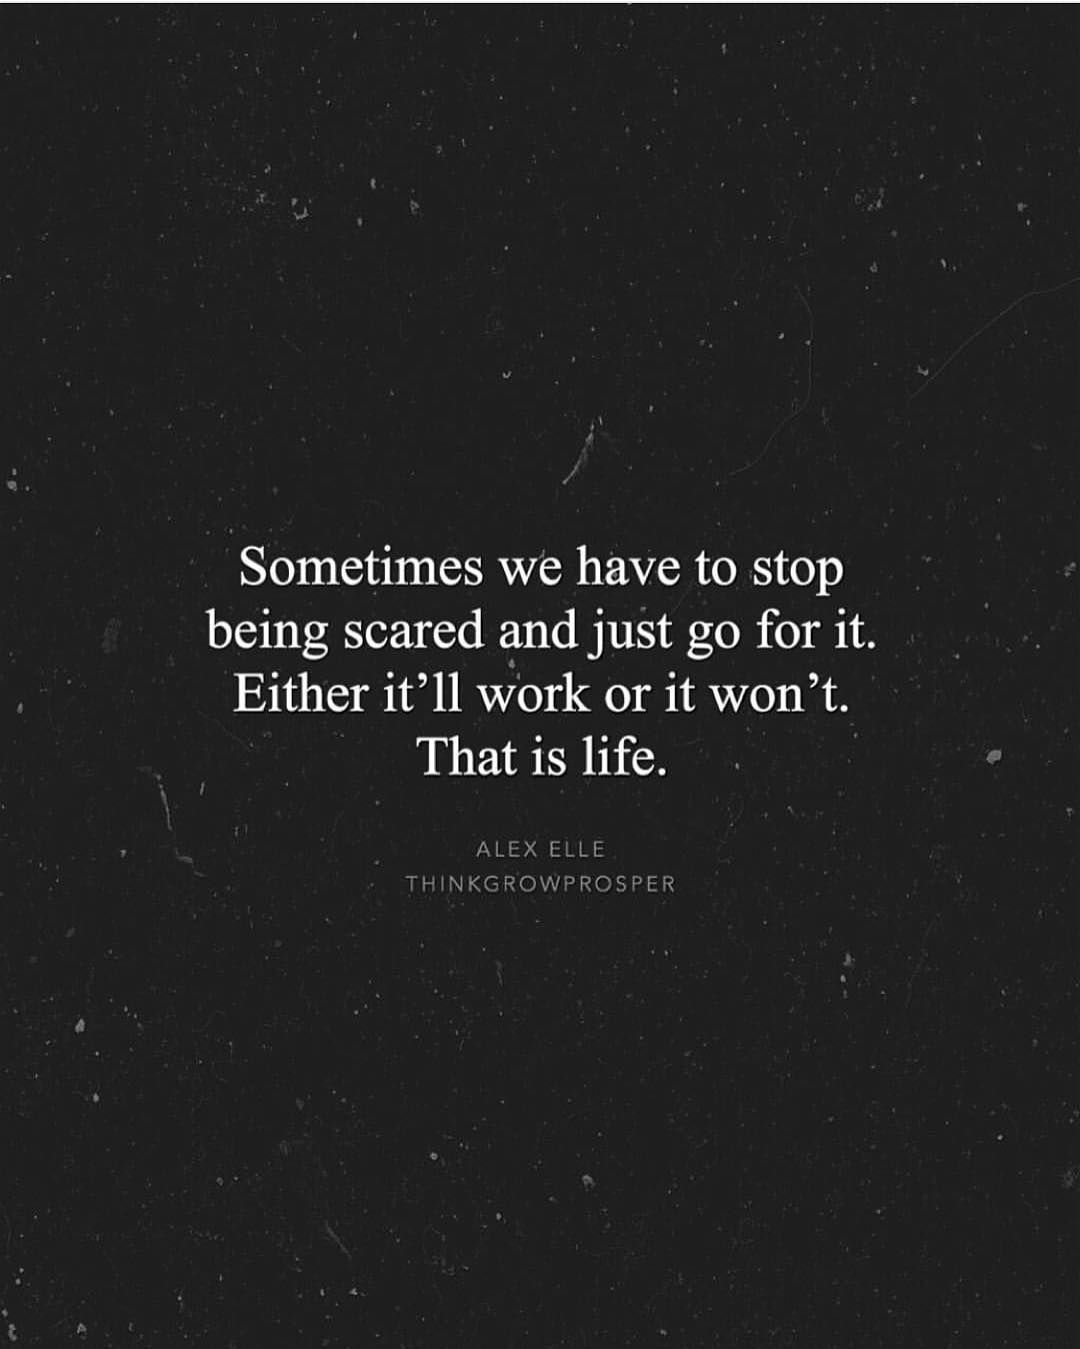 Go For It Quotes Pin by Britany Collett on Ain't that the truth!!   Pinterest  Go For It Quotes